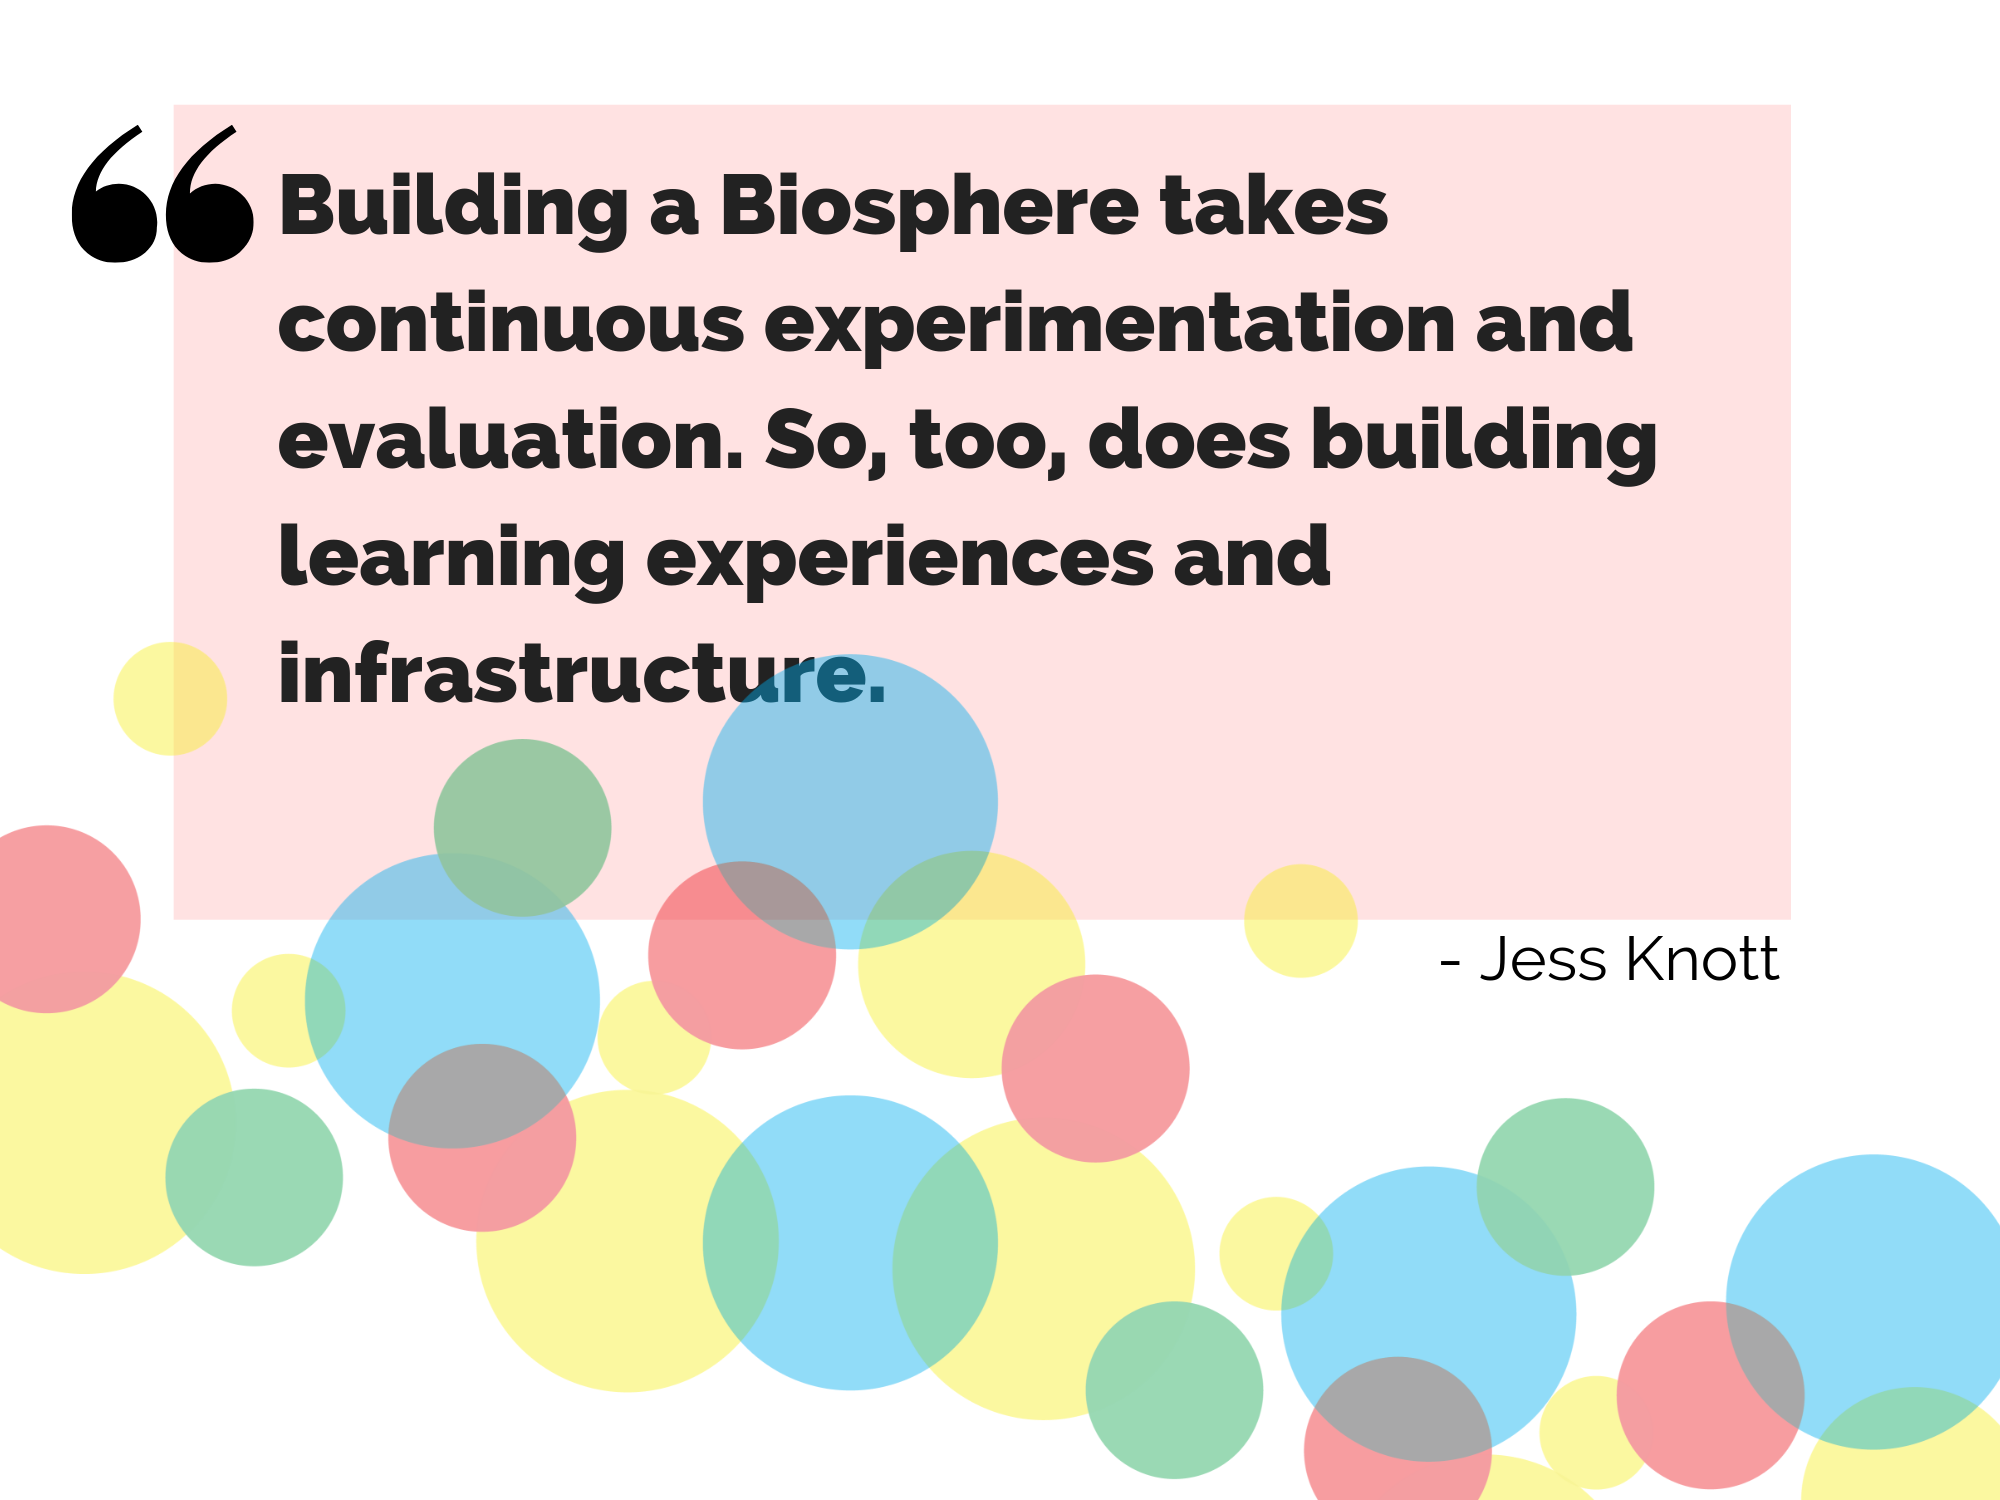 Building a Biosphere takes continuous experimentation and evaluation. So, too, does building learning experiences and infrastructure. Quote by Jess Knott on her recent experience designing inclusive curriculum and student experiences at Biosphere 2